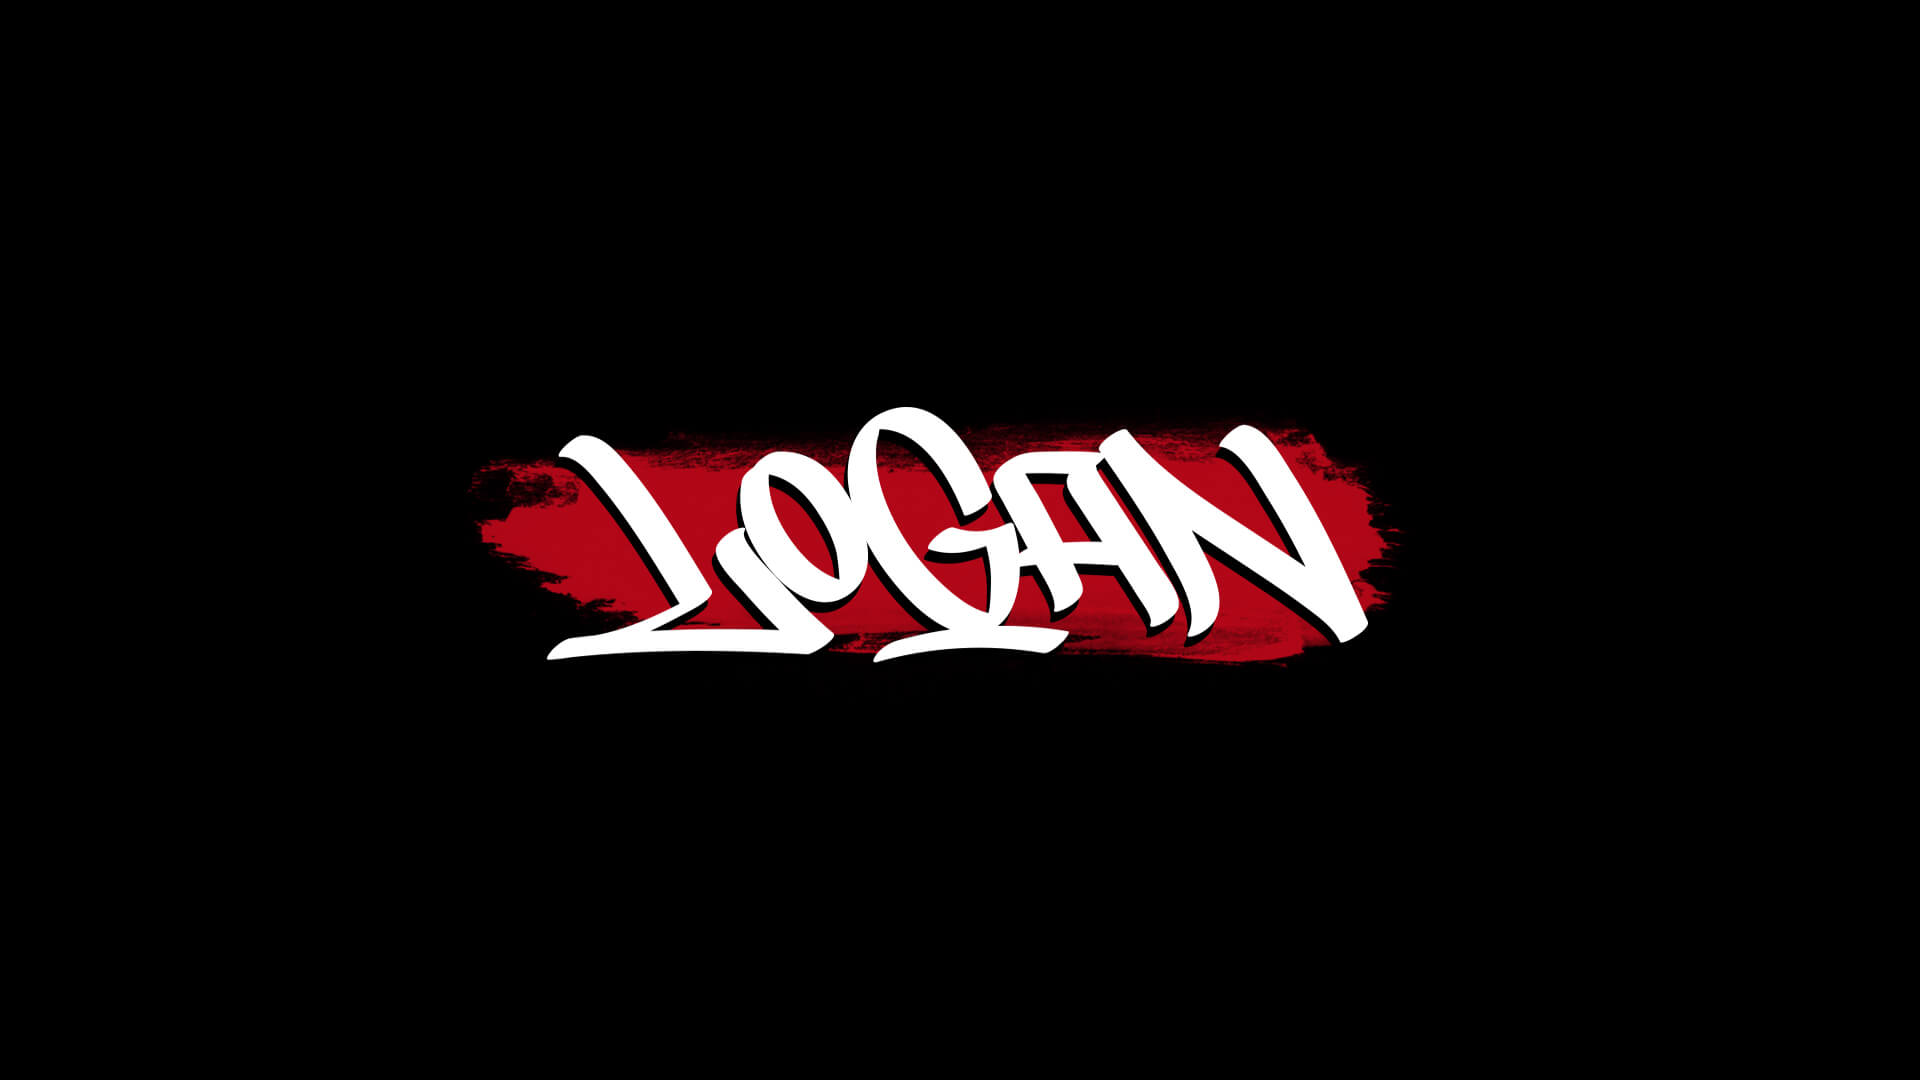 bandits-tag-graffitti-hiphop-breackdance-logan